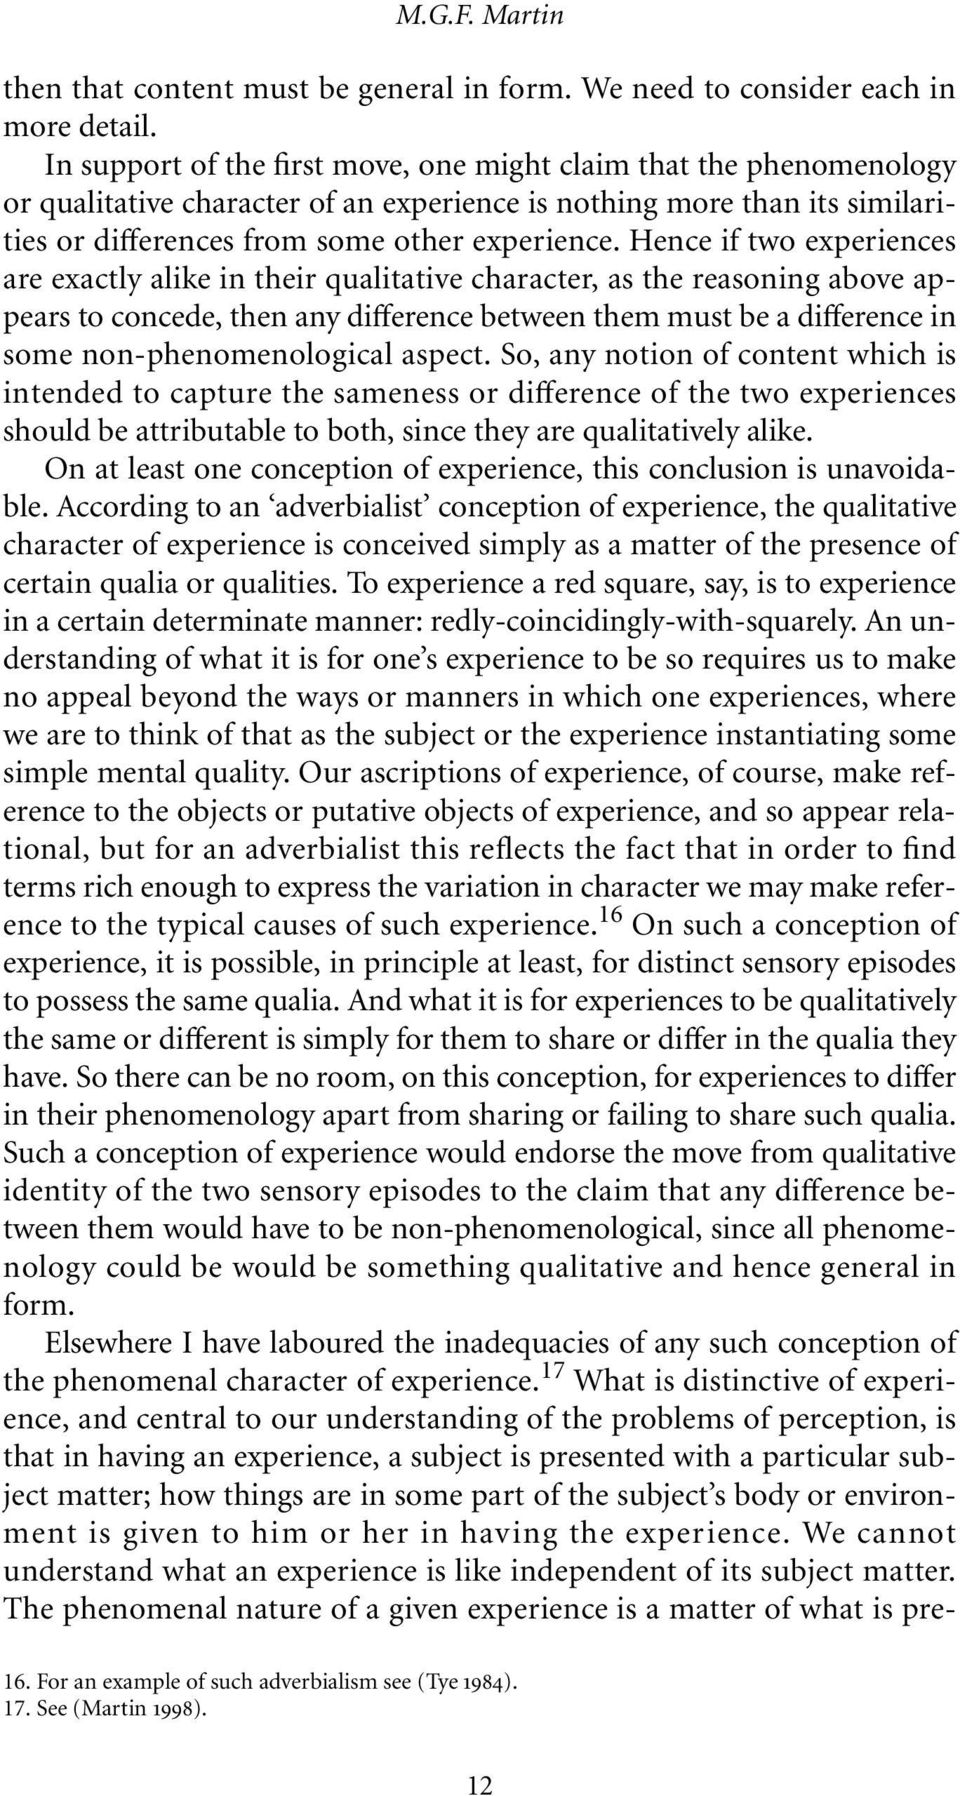 Hence if two experiences are exactly alike in their qualitative character, as the reasoning above appears to concede, then any difference between them must be a difference in some